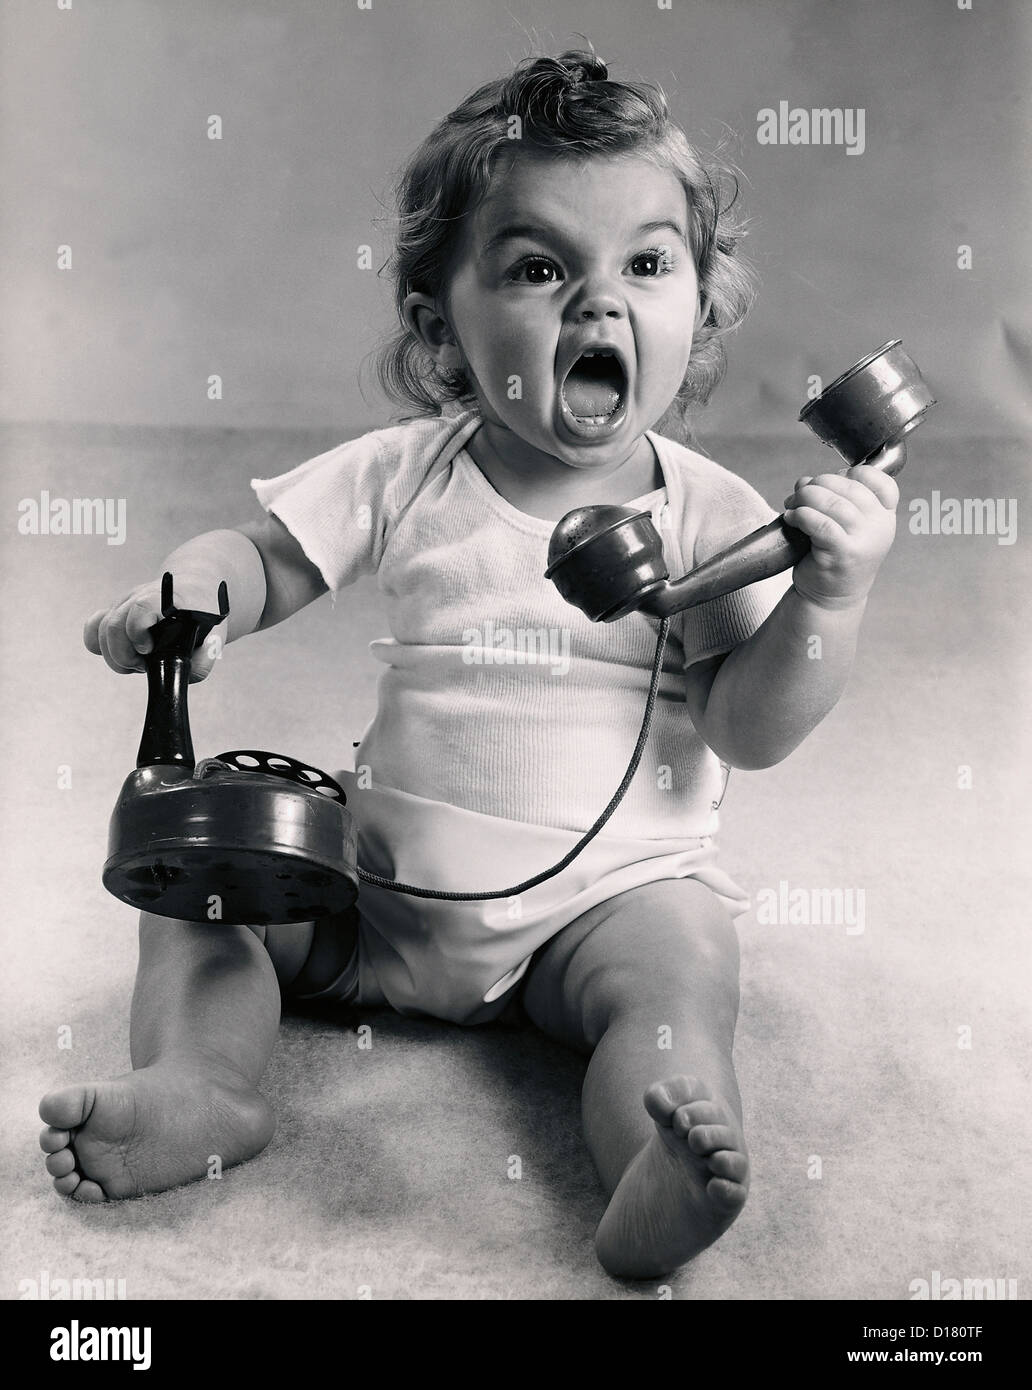 Vintage photo of infant screaming with phone - Stock Image